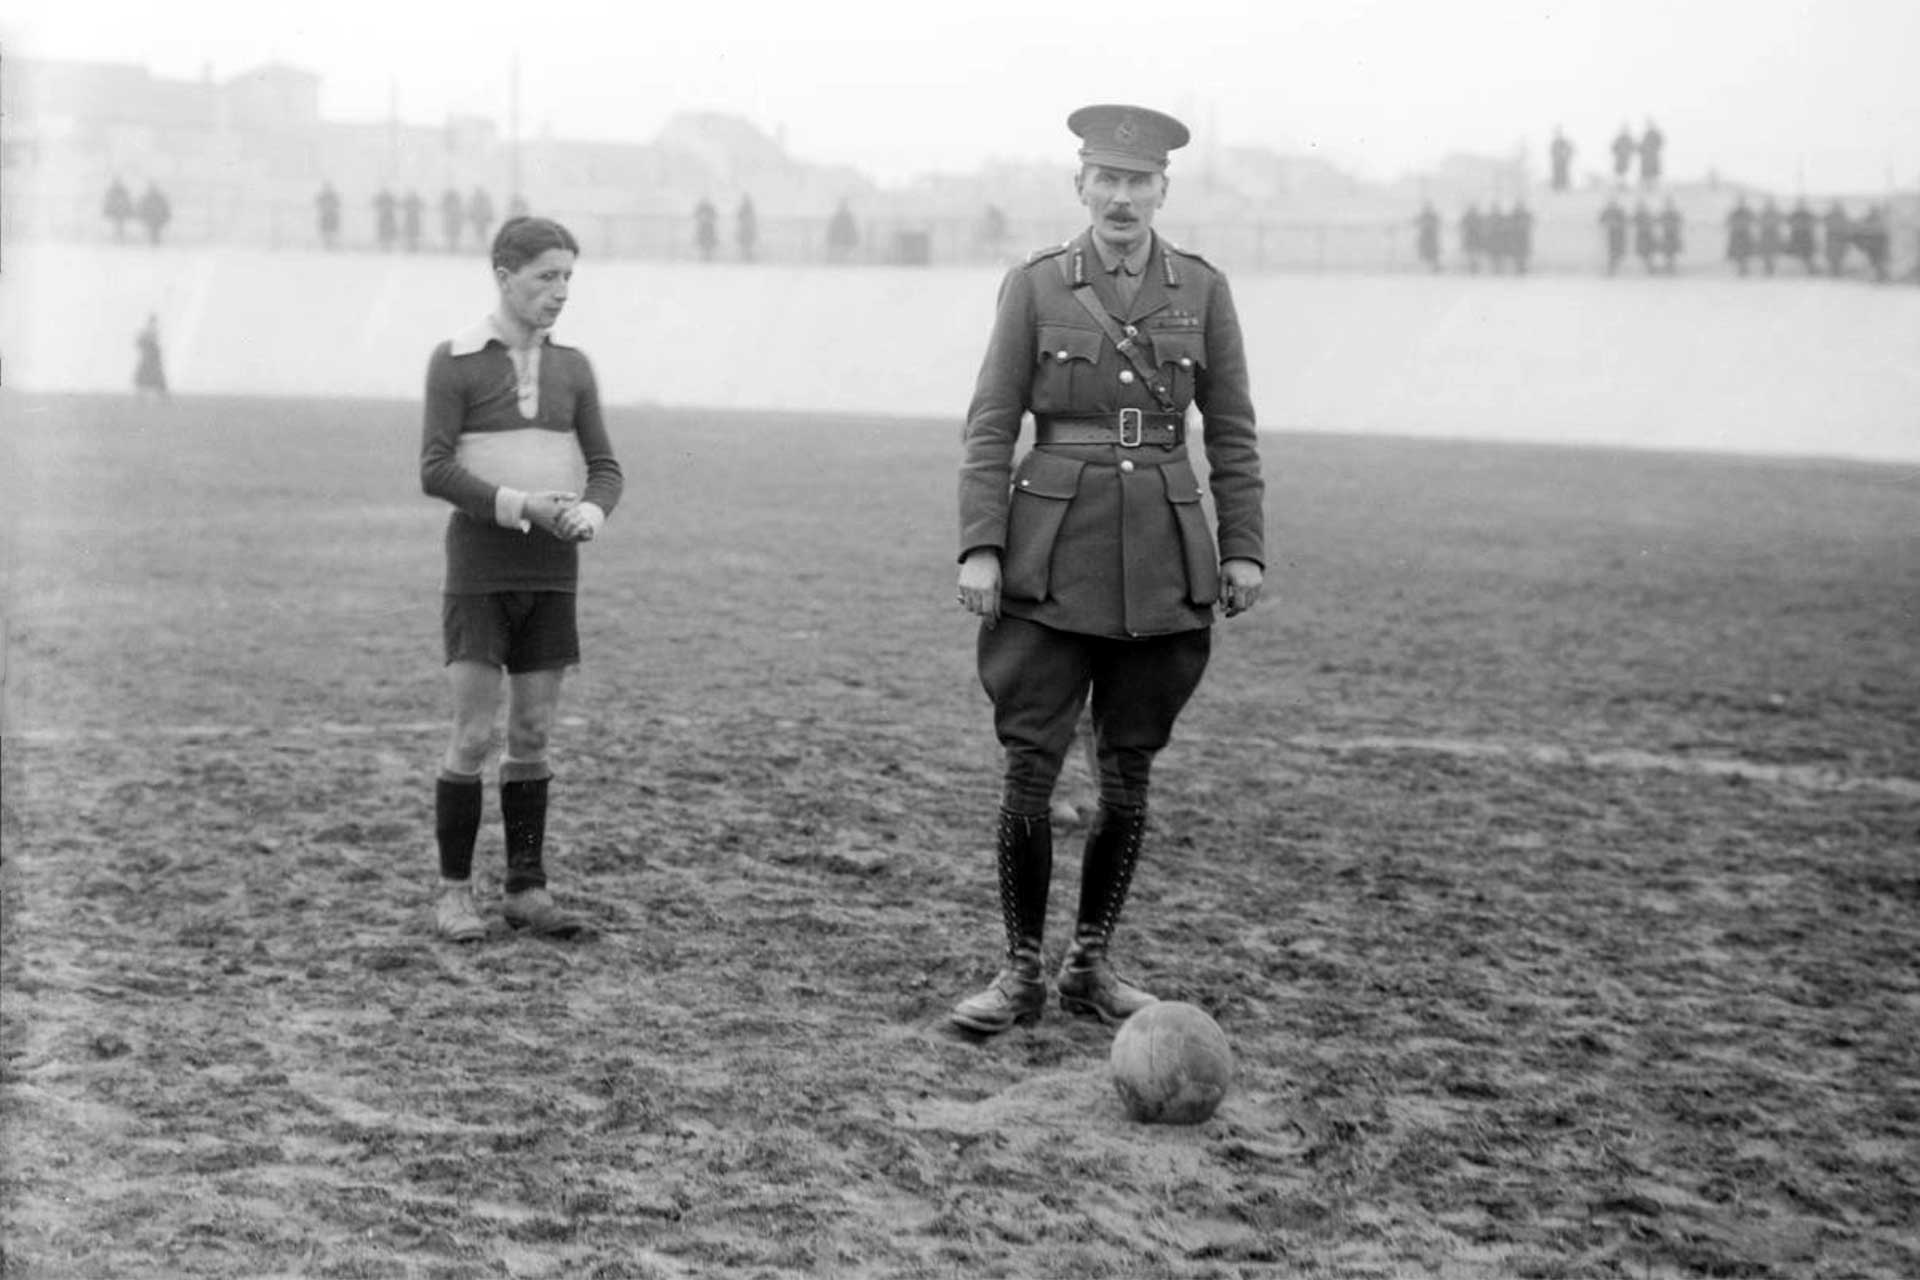 A British General about to kick off at a football match between British and Italian Armies teams during World War 1 (Photo: Ernest Brooks, Imperial War Museums / IWM Q 26566)